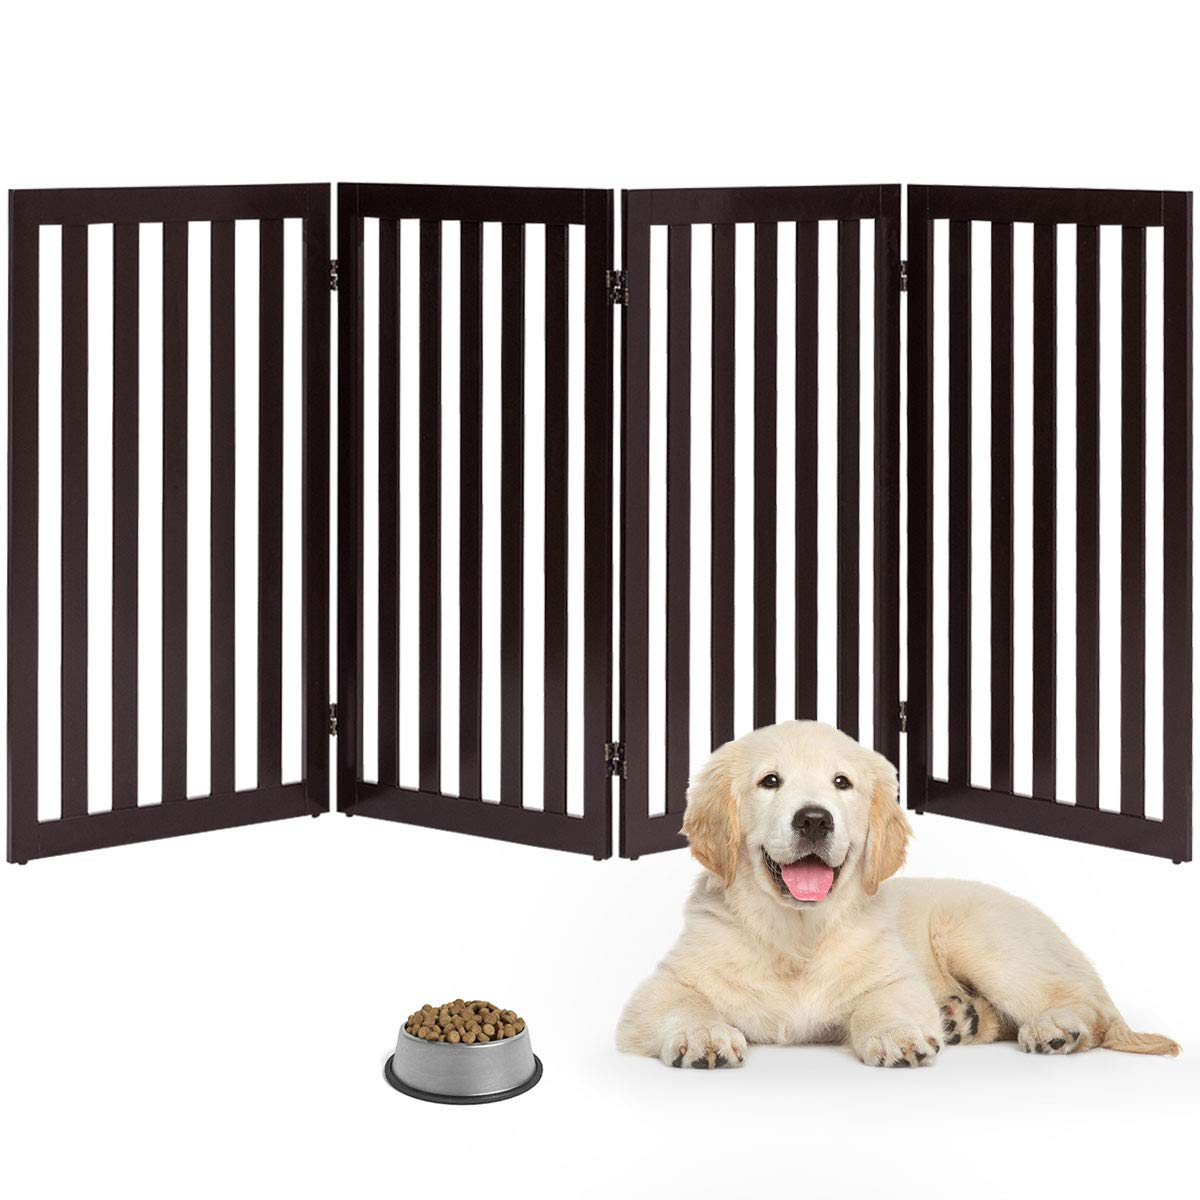 Giantex 36'' Wooden Doge Gate, Configurable Freestanding Pet Gate for Small and Large Pets, Foldable Tall Panels for House Doorway Stairs Extra Wide Pet Safety Fence (Brown, 80''W)